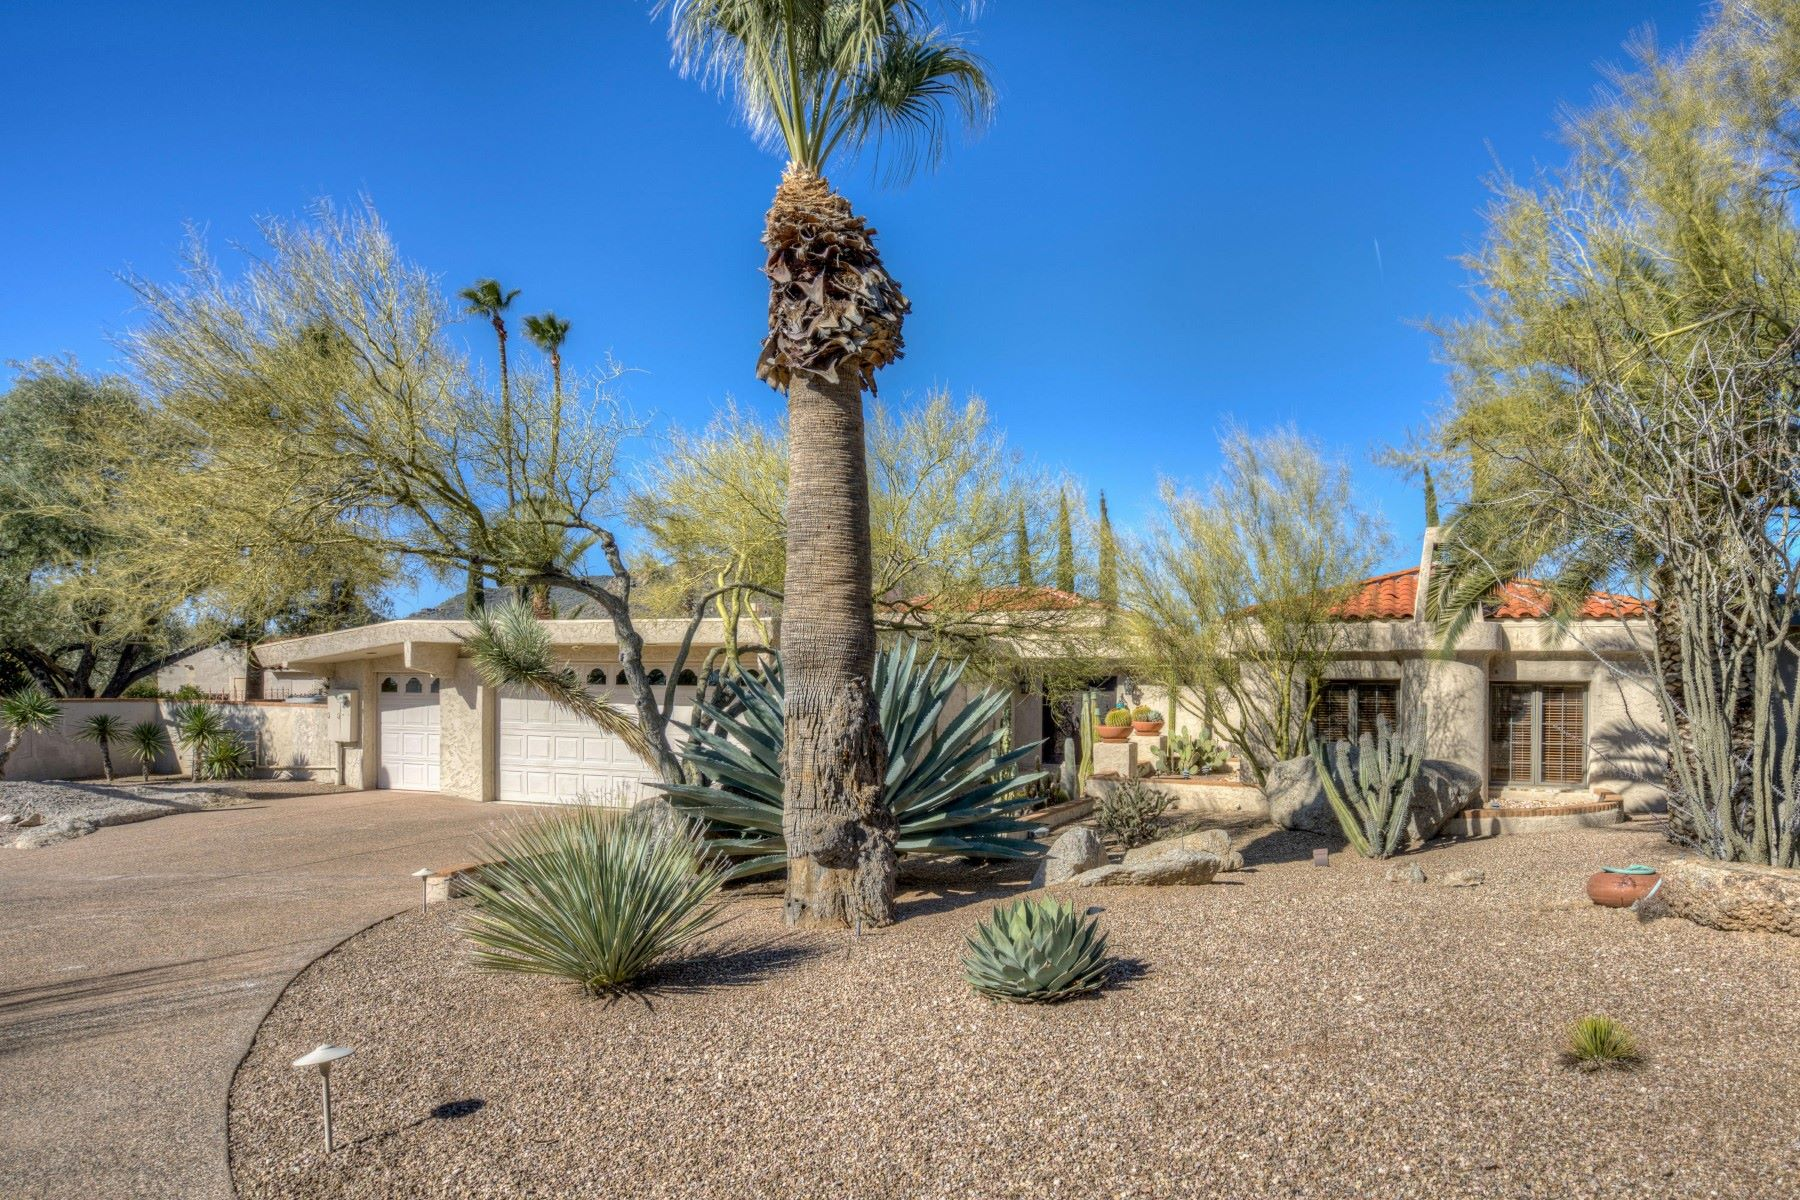 Single Family Homes for Active at Boulders Carefree 4 1700 E Staghorn Lane 36 Carefree, Arizona 85377 United States